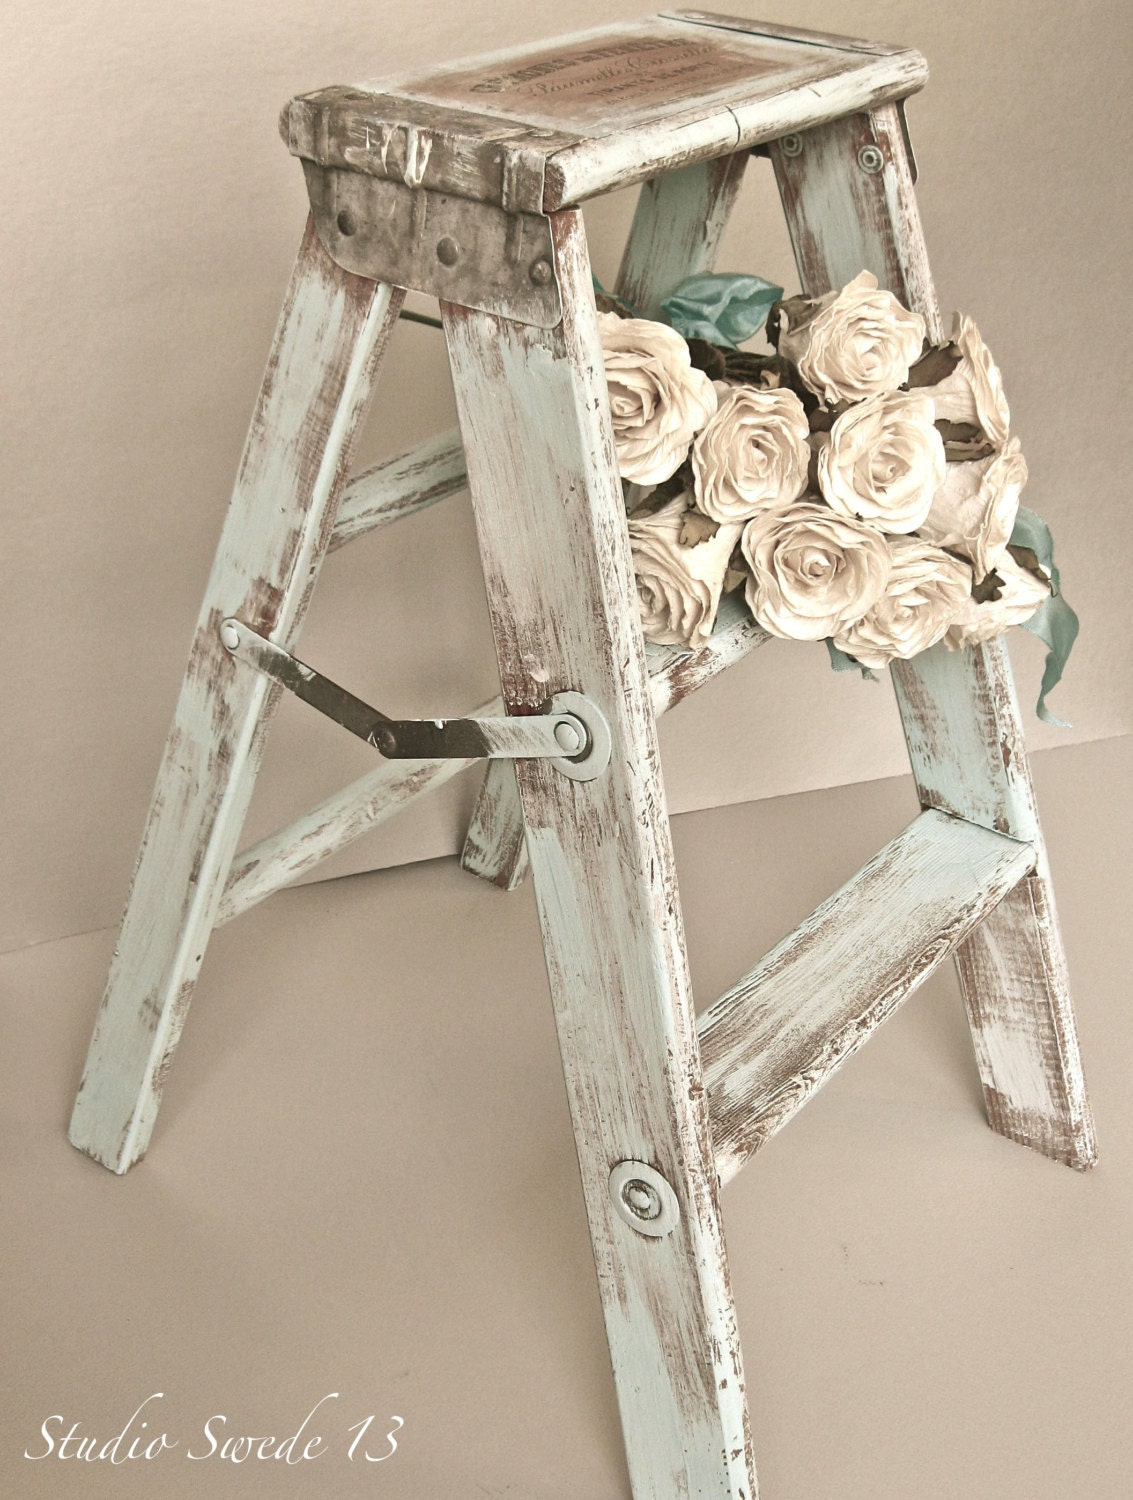 French Country Photography, Fine Art, Vintage Step Stool, Old Ladder, Shabby and Chic, Aqua Blue, Rustic Farmhouse, Wall Art - StudioSwede13